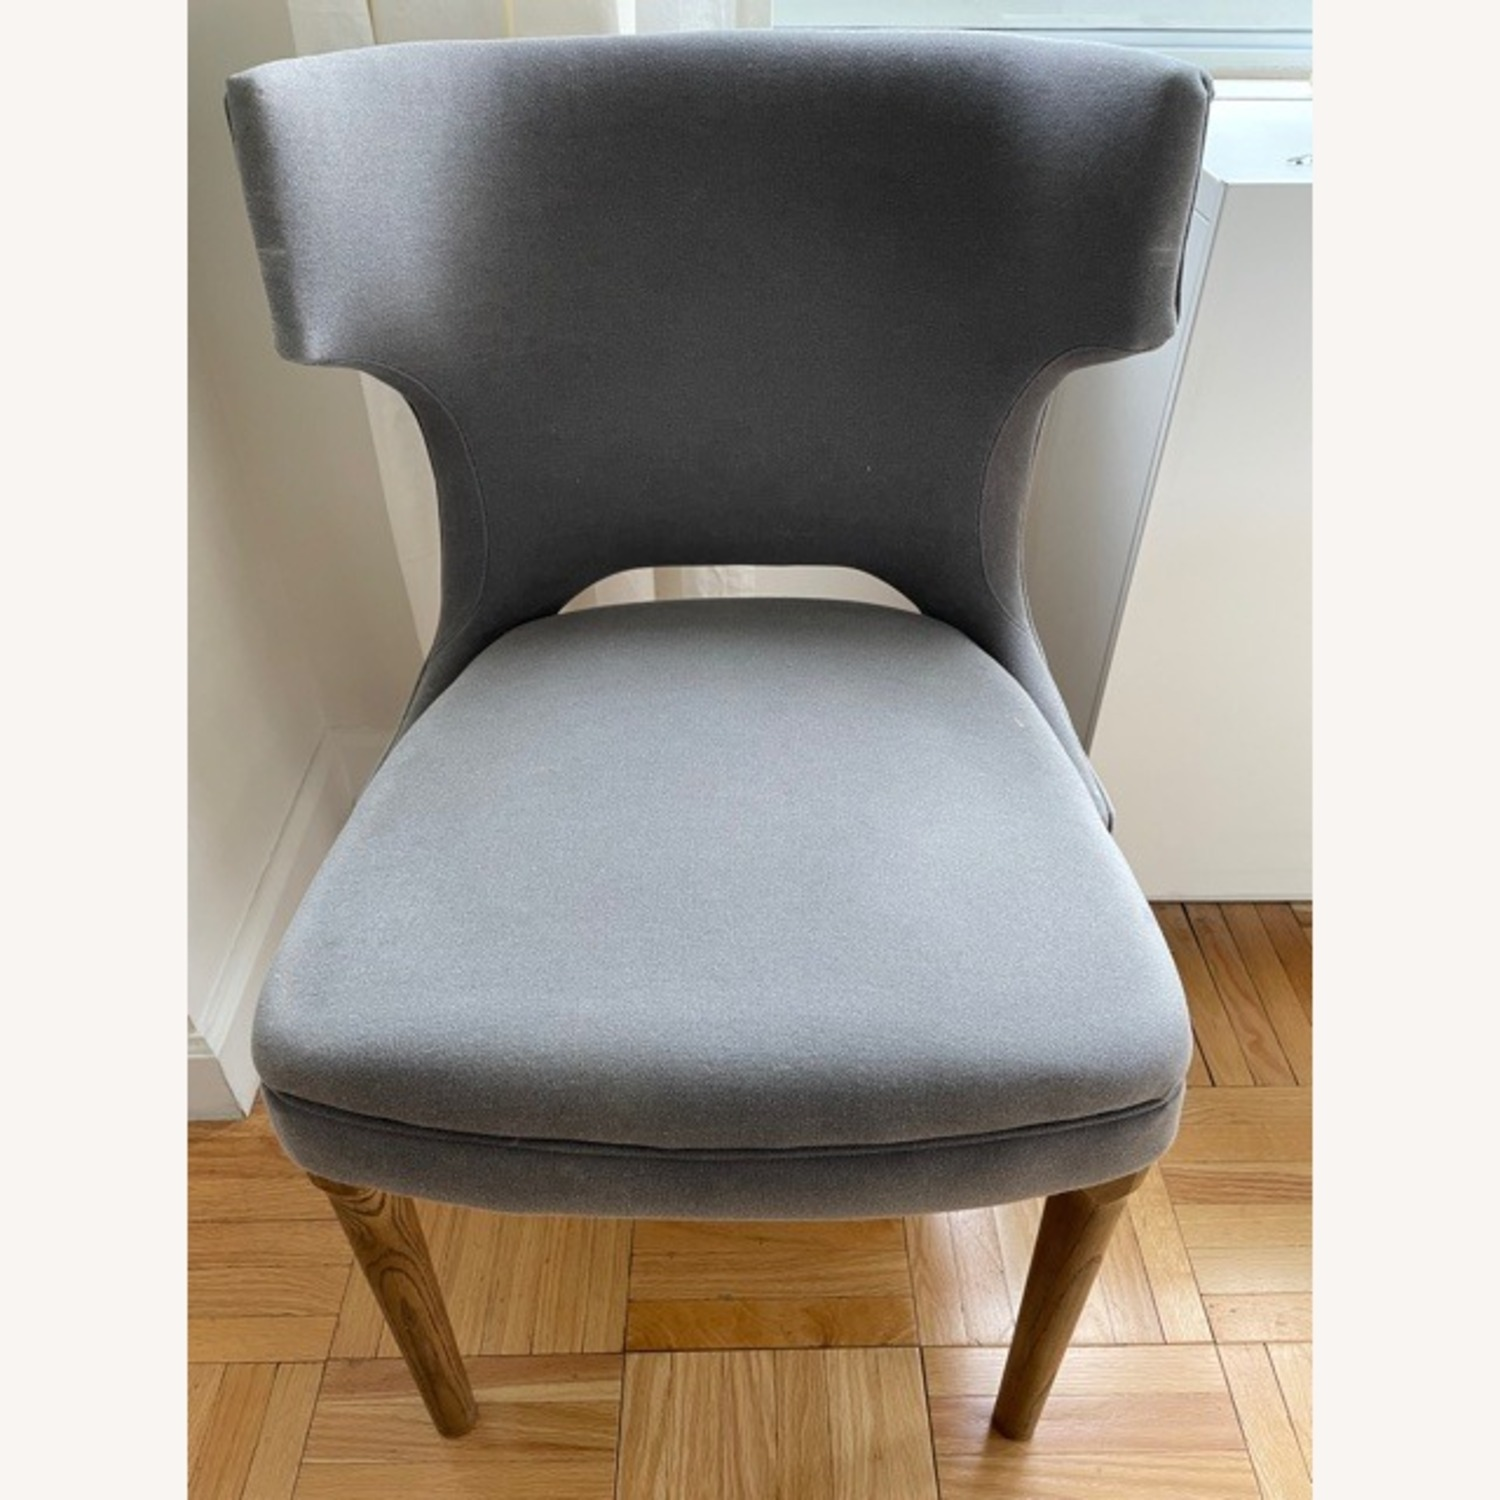 West Elm Nailhead Upholstered Chair - image-1